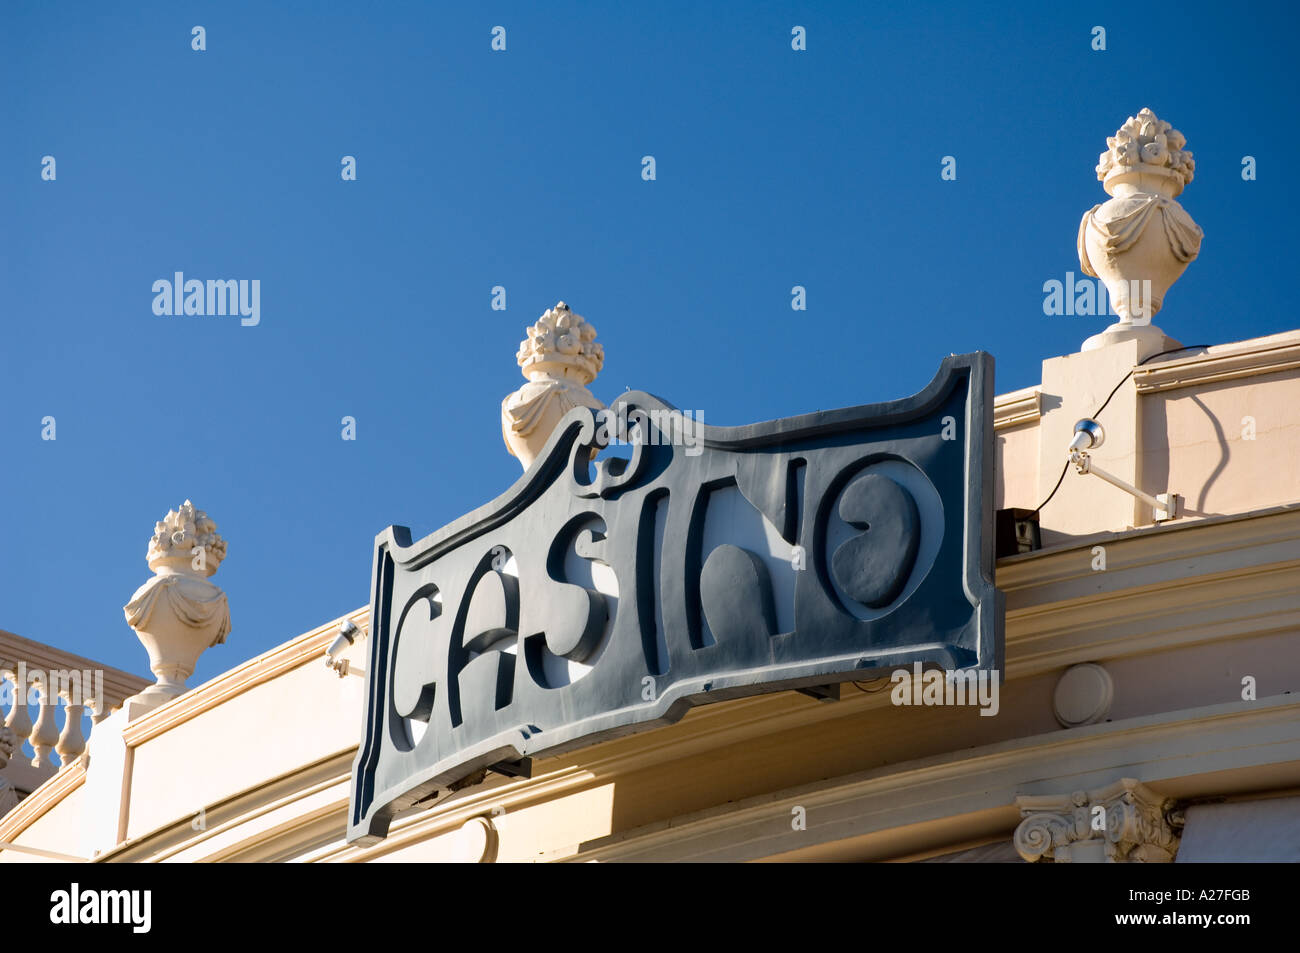 The sign for the casino in Beaulieu-sur-mer, on the coast between Nice and Monaco, on the Cote d'Azur - Stock Image